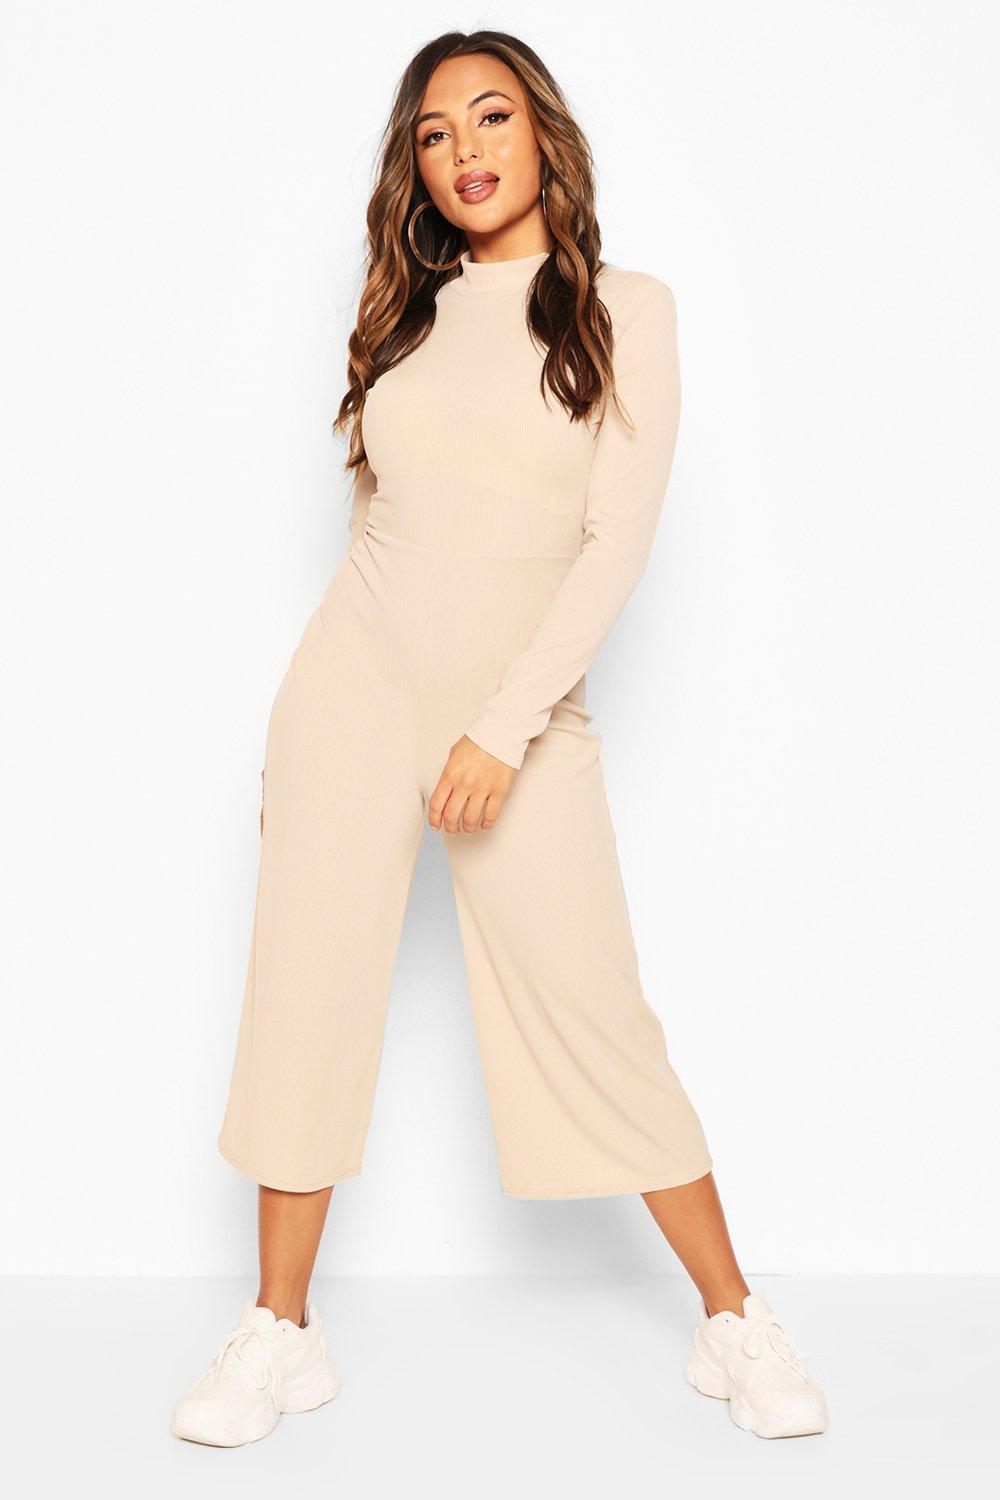 boohoo Womens Petite High Neck Ribbed Culotte Jumpsuit - Beige - 14, Beige